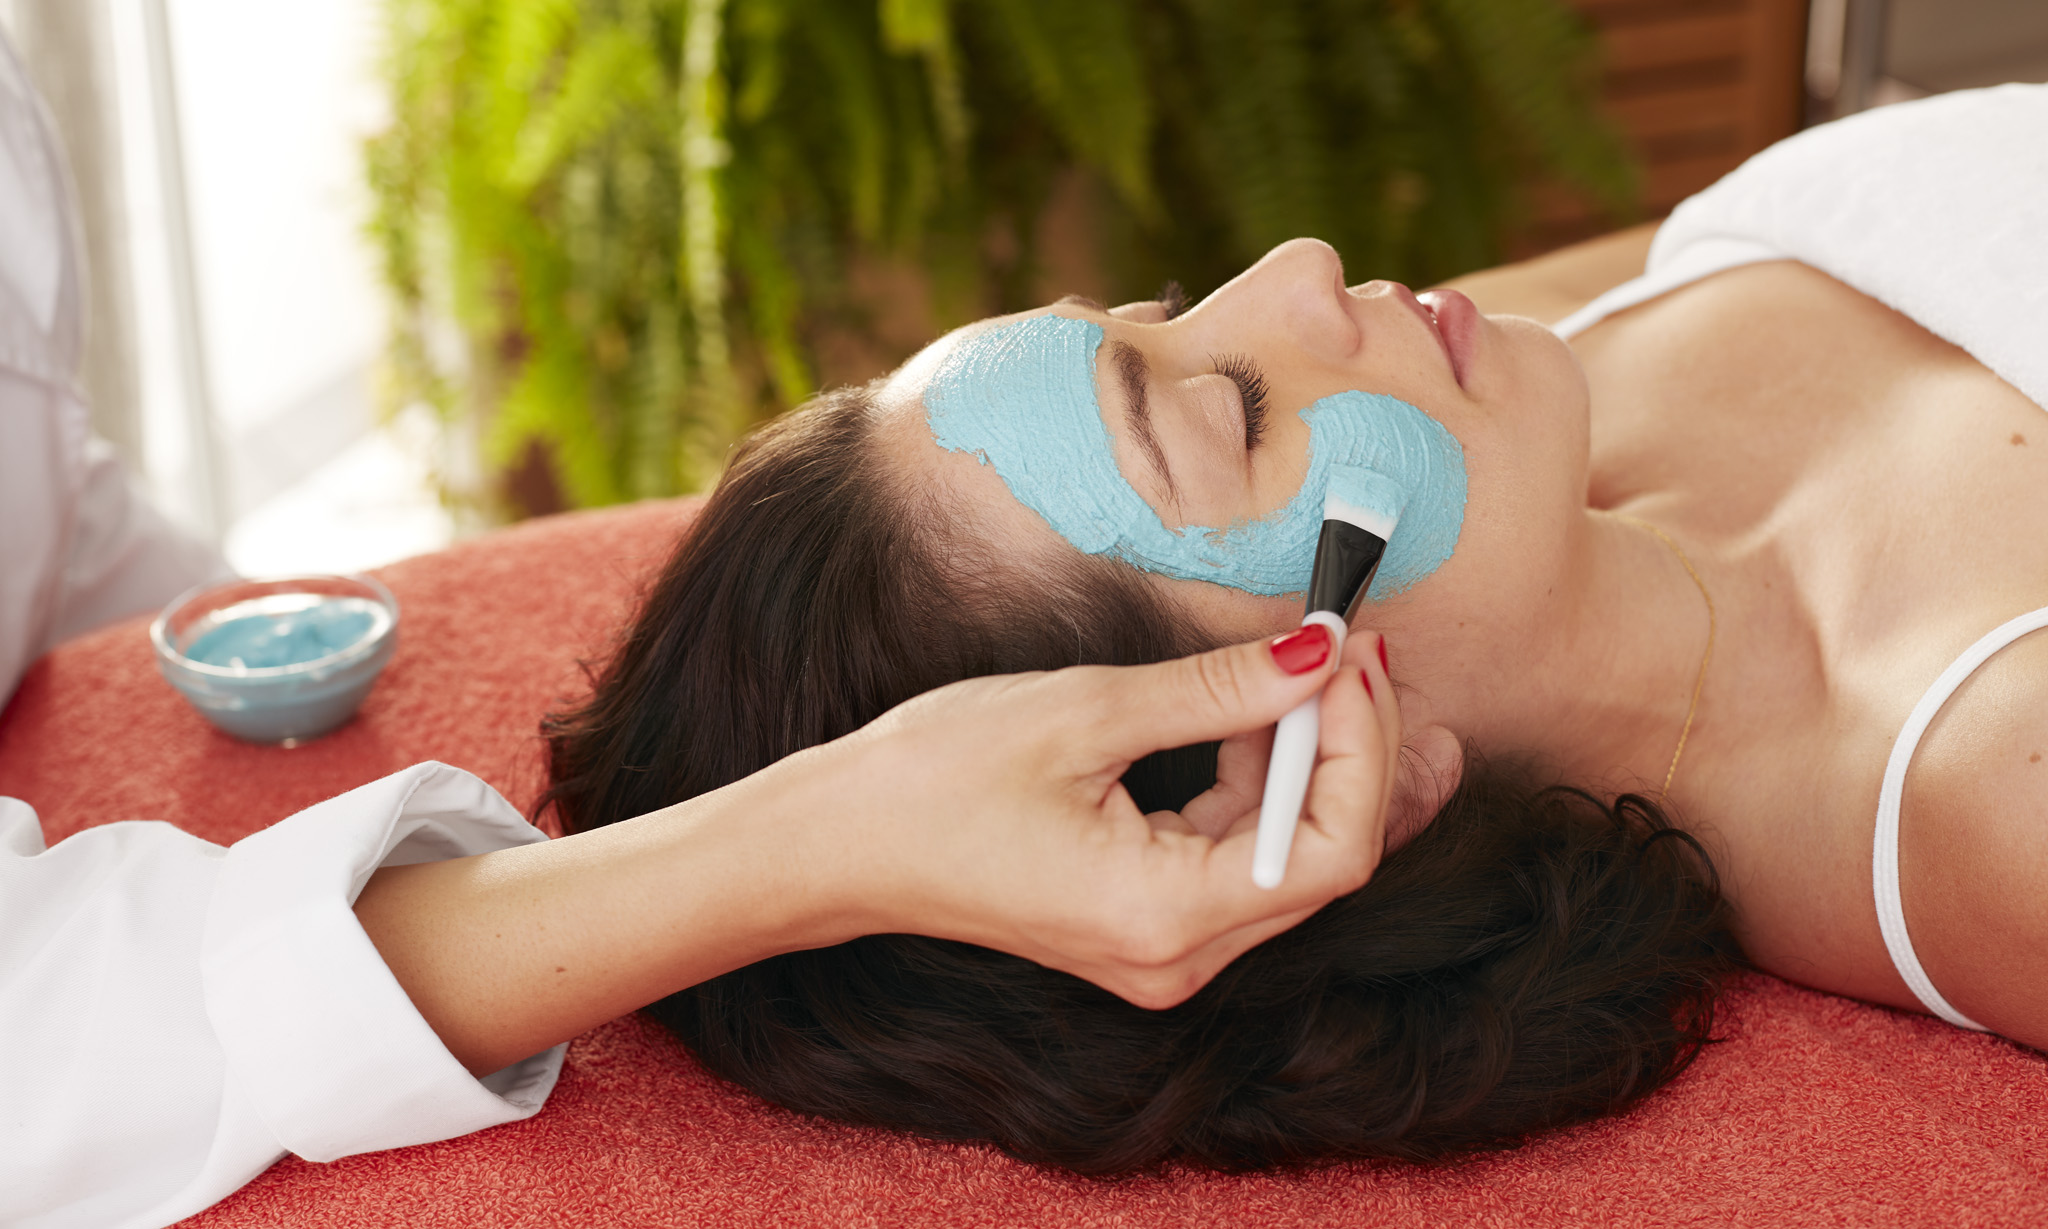 Queen s Skin Care Solutions Garland TX